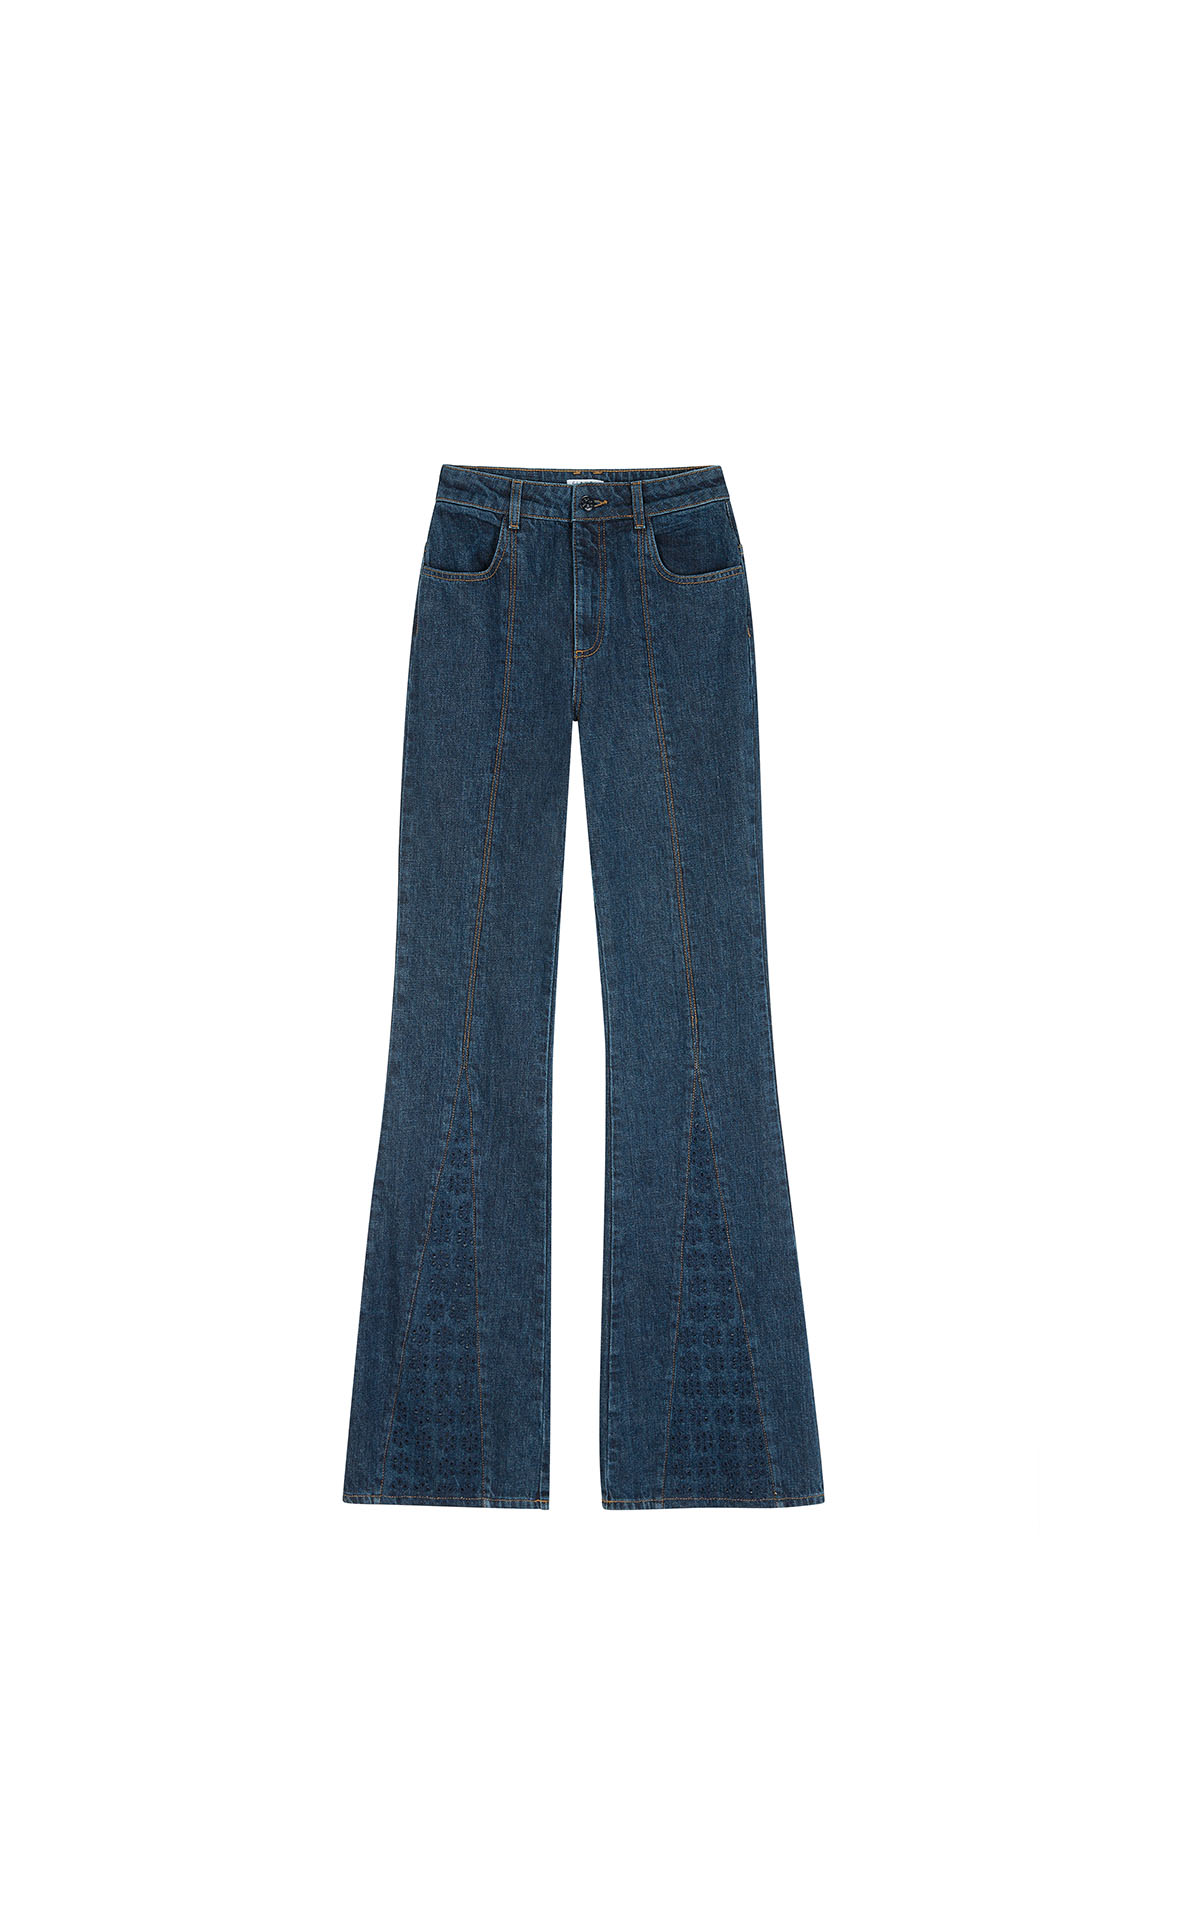 Claudie Pierlot jeans with embroidered legs at the bicester village shopping collection